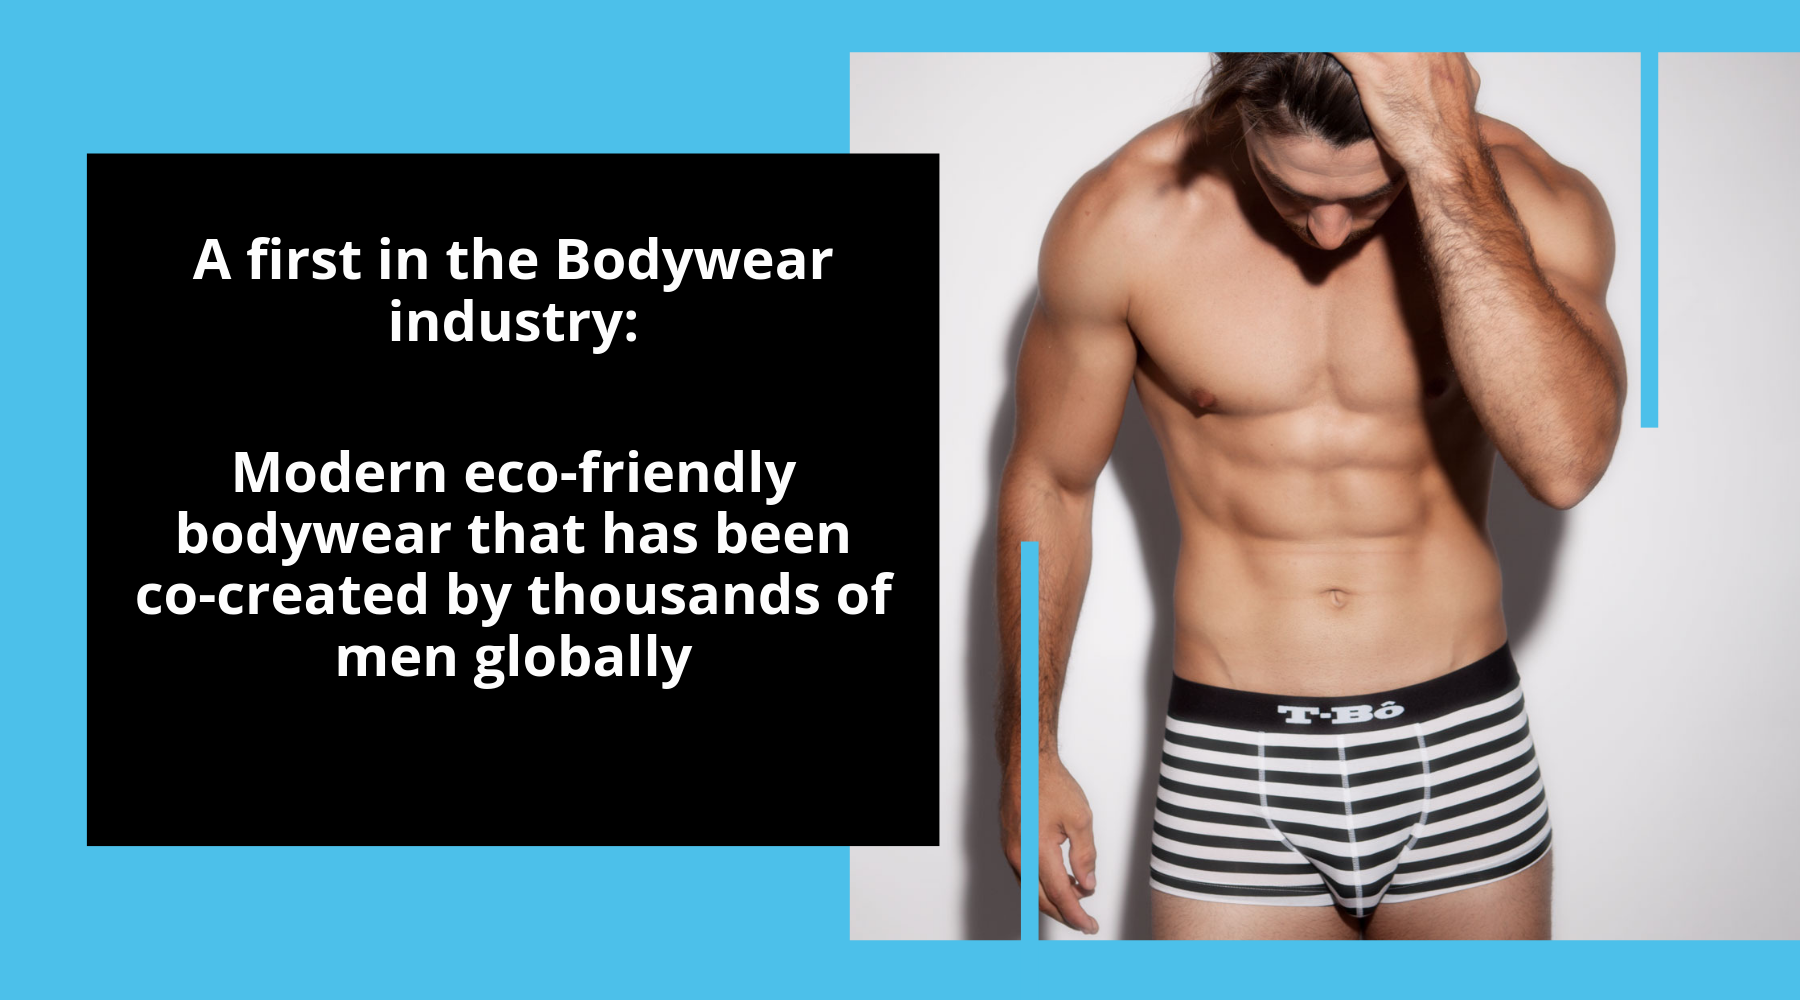 Modern eco-friendly products, co-created by thousands of men globally